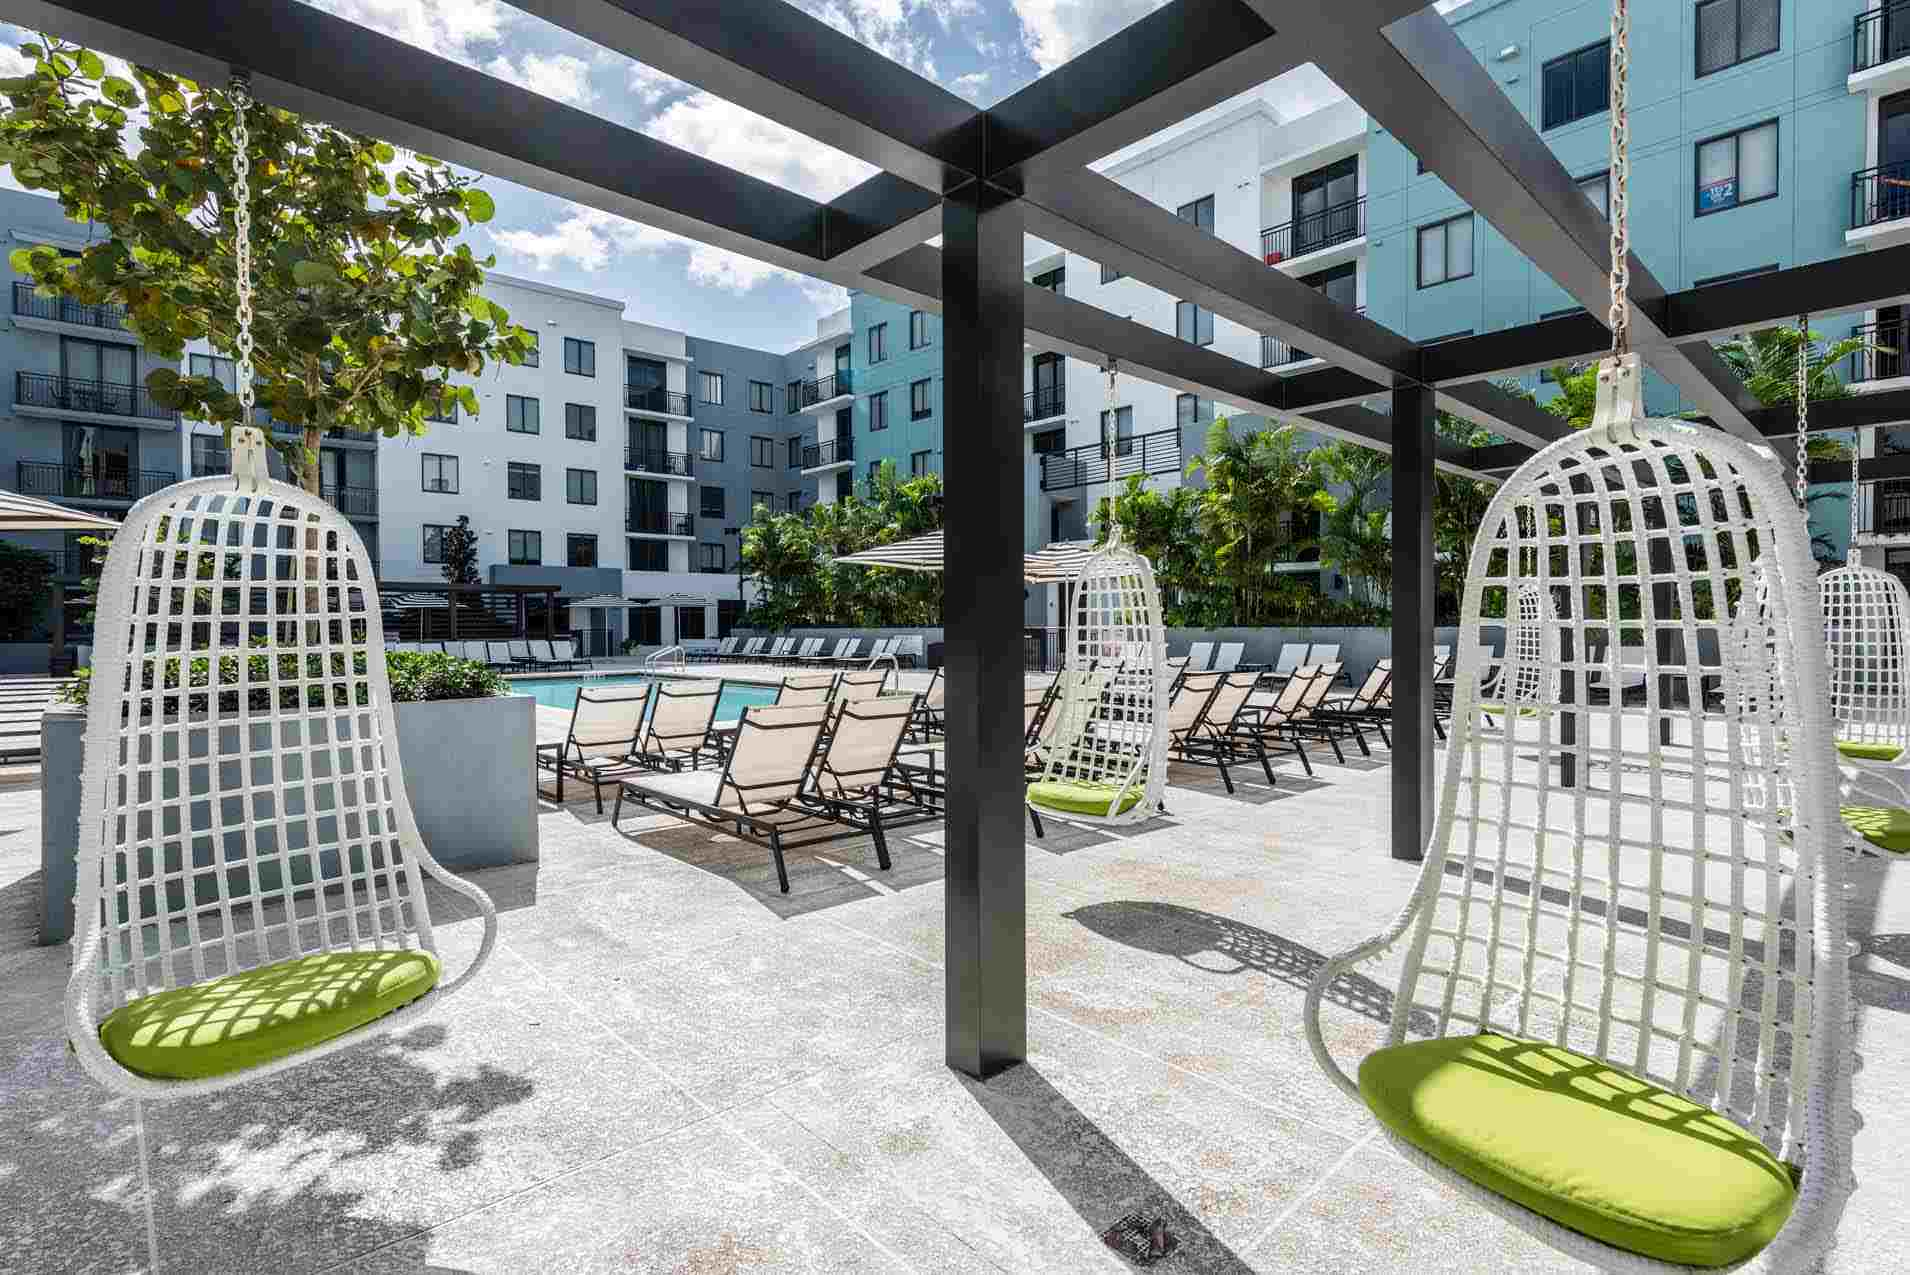 4th-Street-Commons-Miami-Poolside-Unilodgers